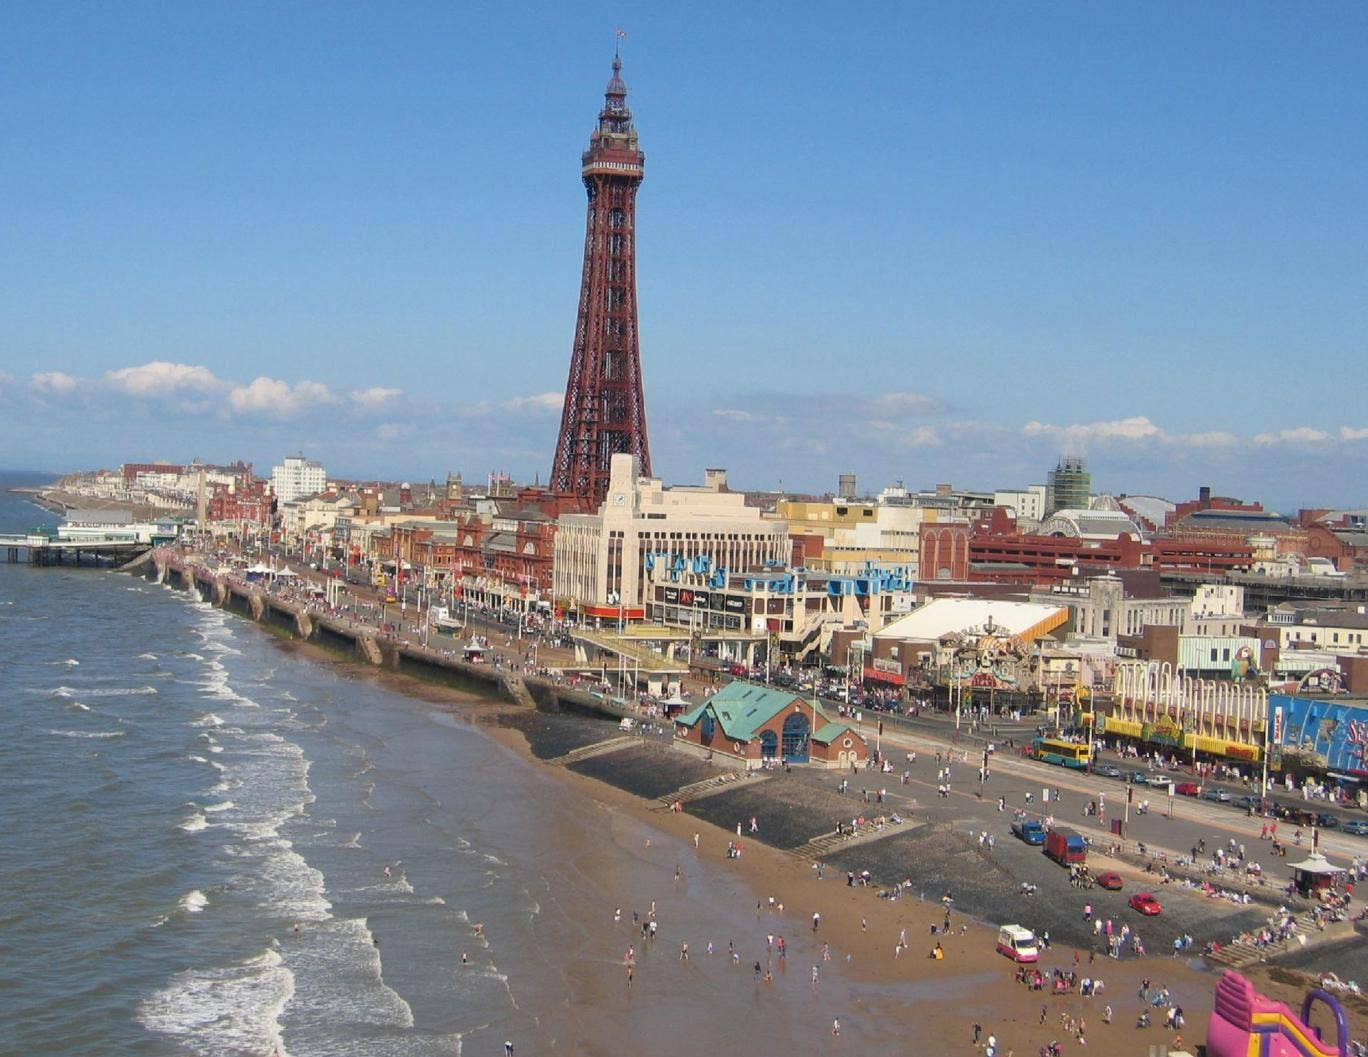 The report, entitled Turning the Tide, called for action to revive the fortunes of seaside towns like Blackpool in Lancashire